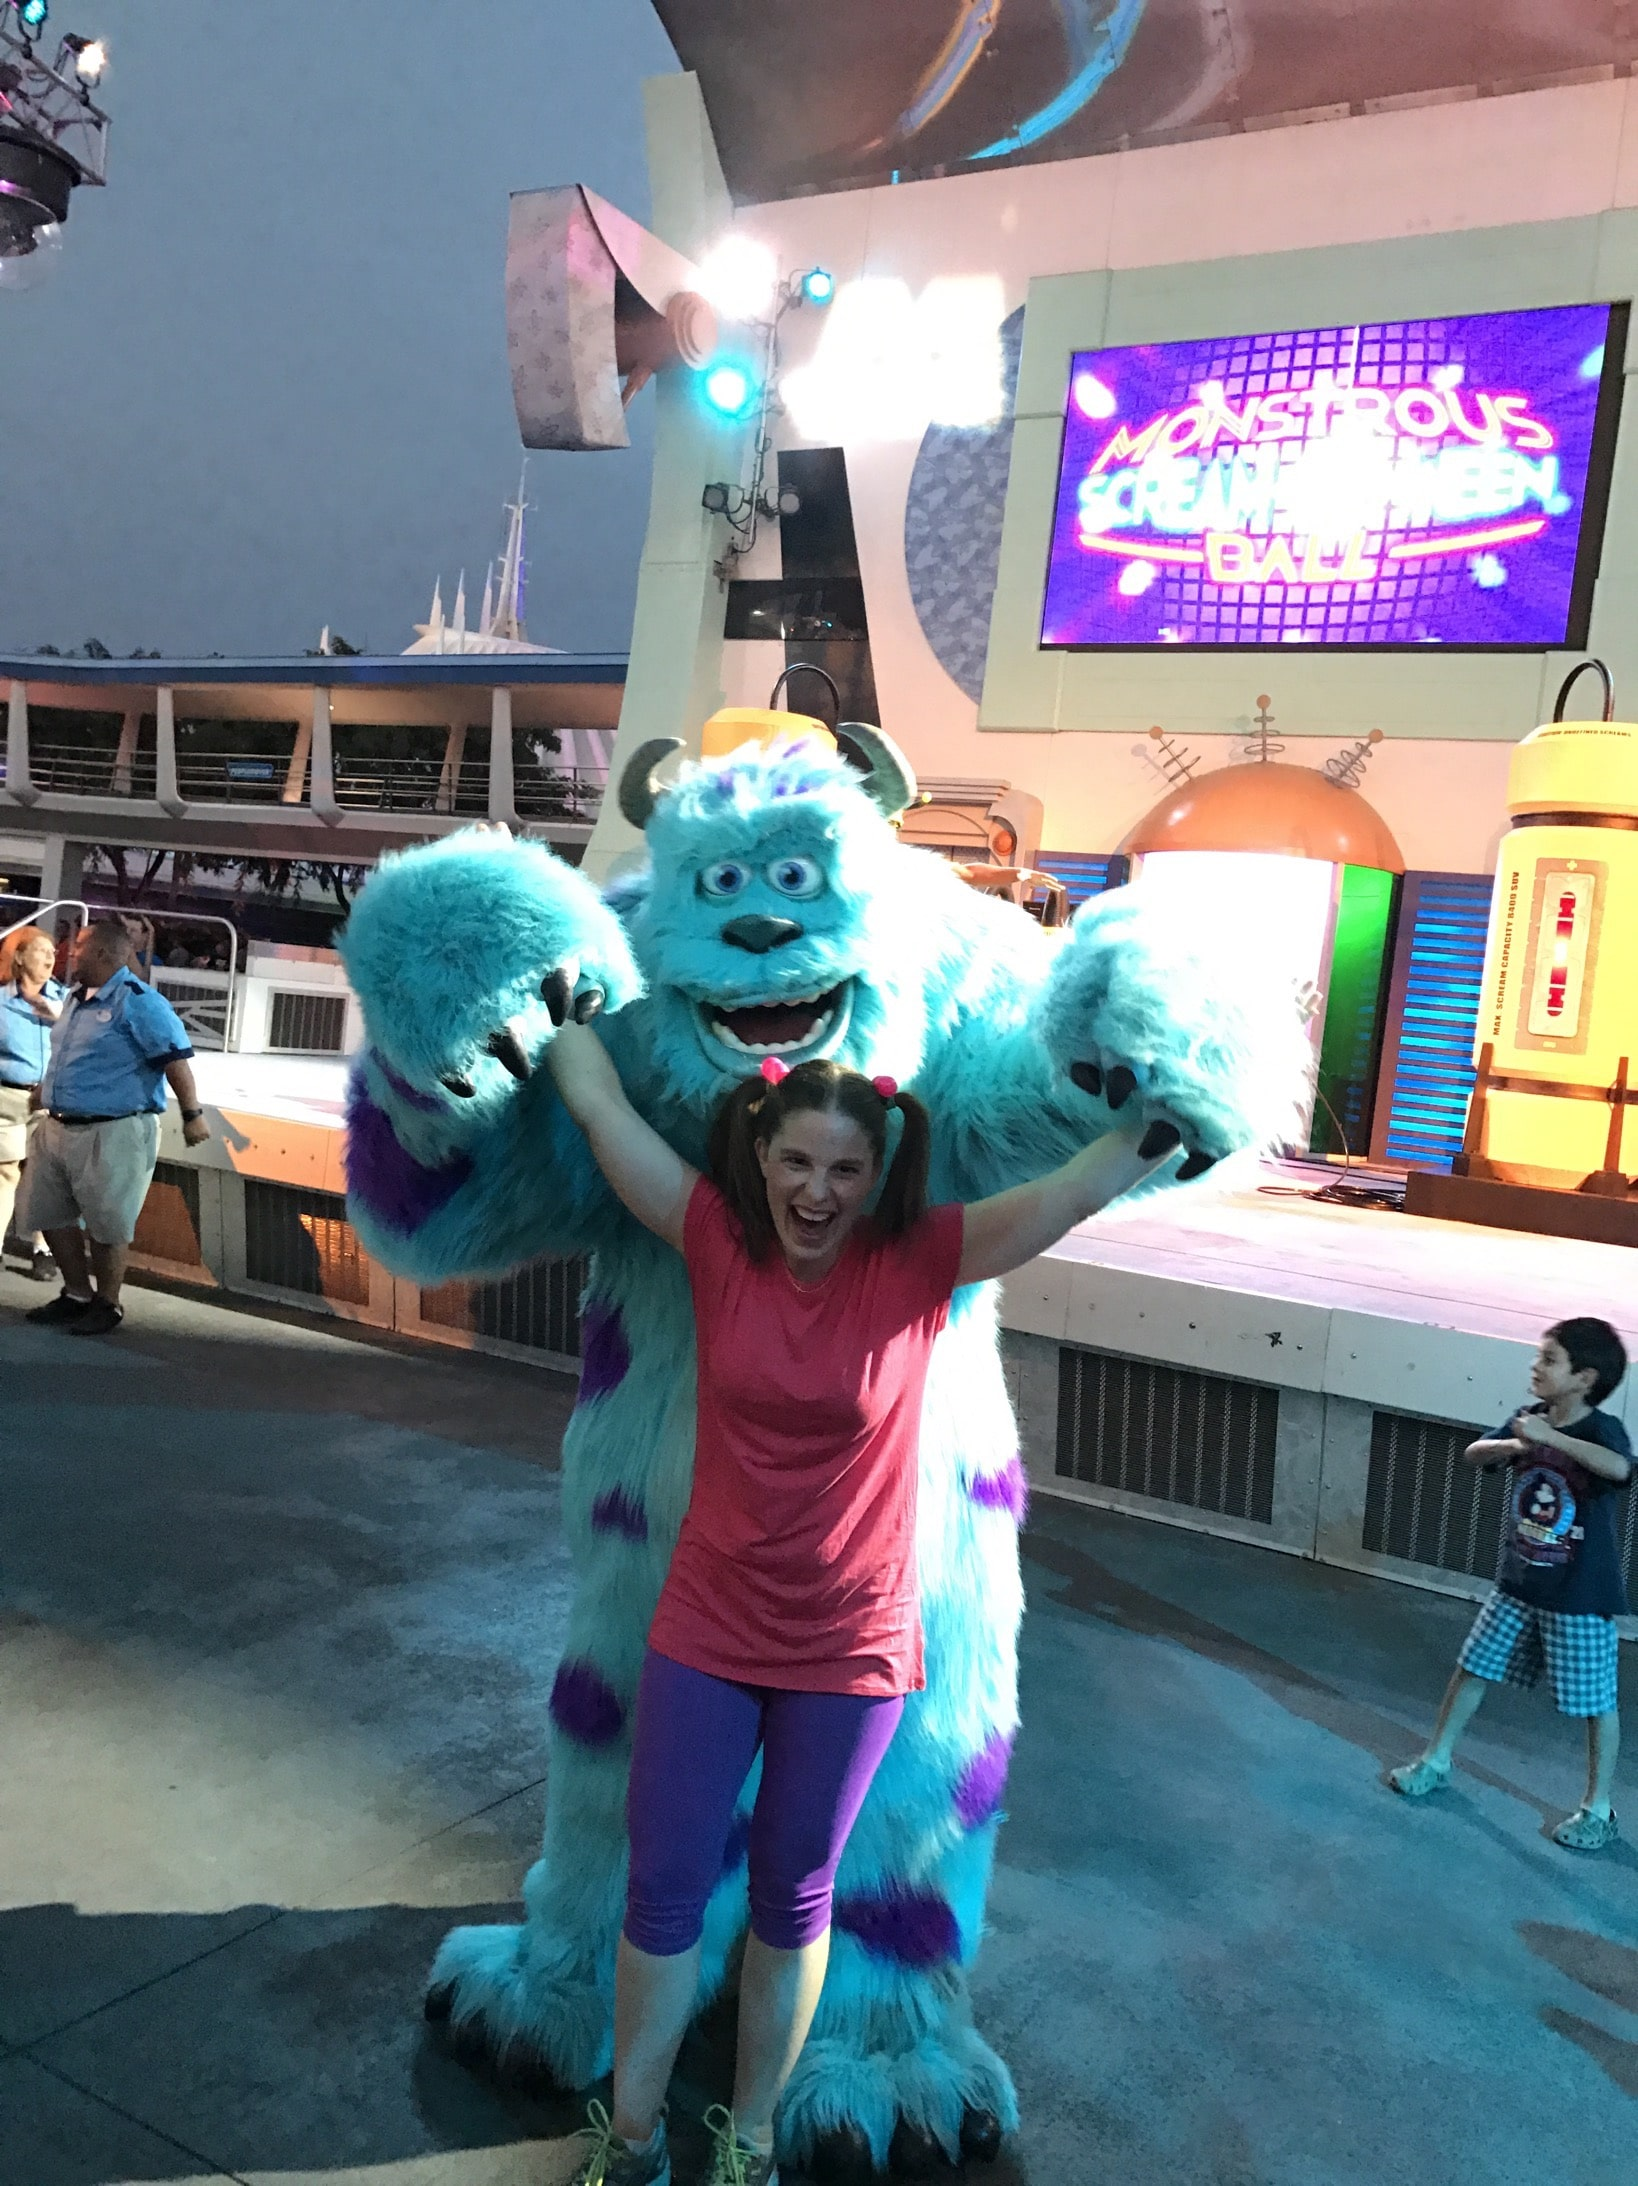 Boo Disney Bound Costume dancing with Sully